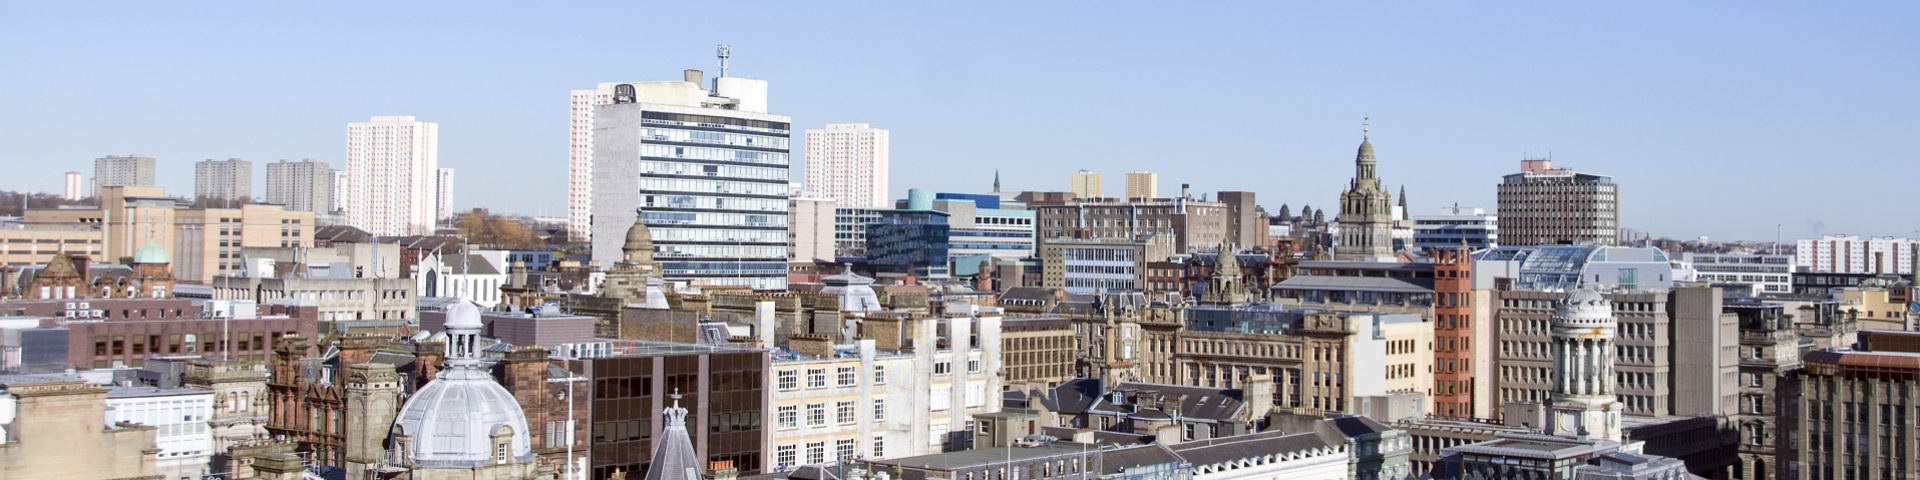 A view of Glasgow's rooftops